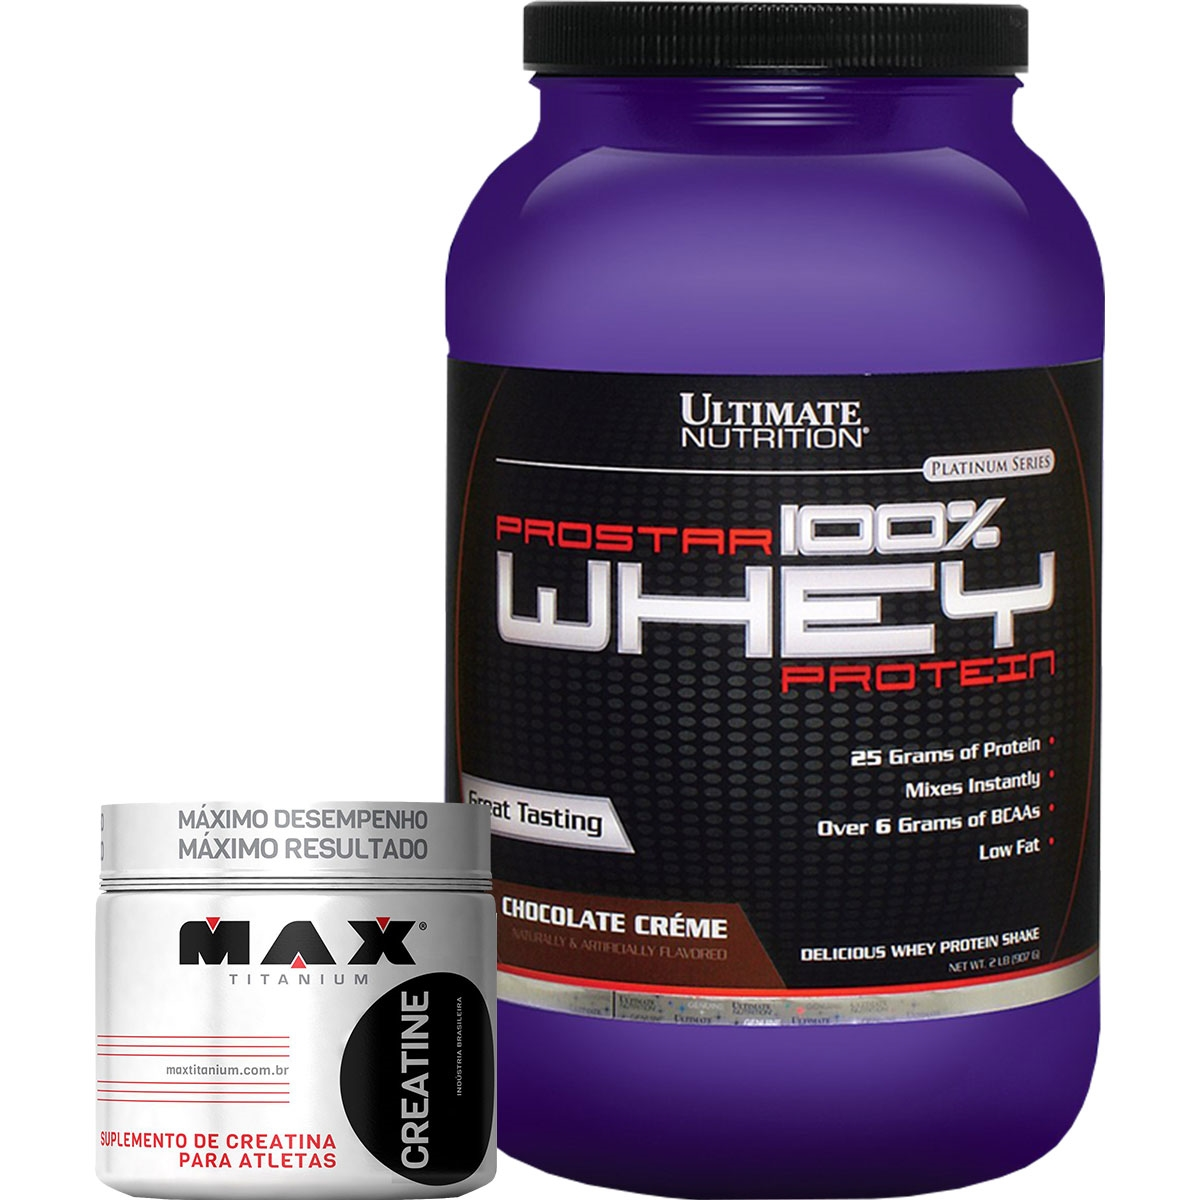 9304774e0 COMBO Prostar 100% Whey Protein (907g) - Ultimate Nutrition + Creatina (150g